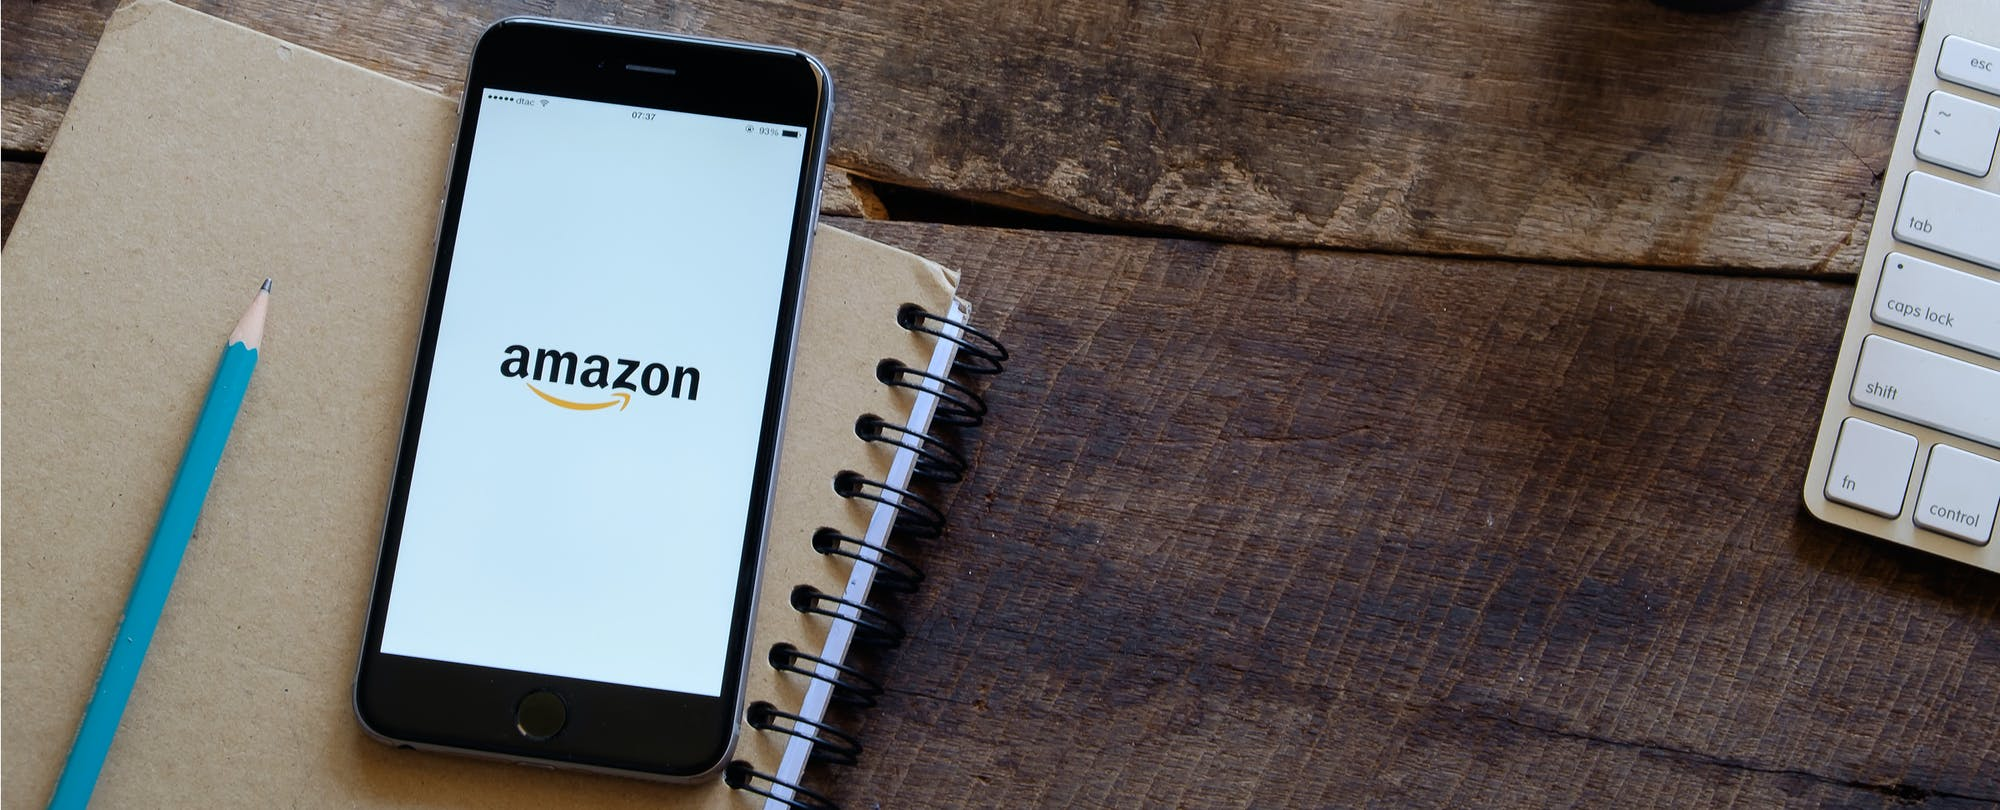 Amazon's Recent Account Closures Have Affected College Students Too